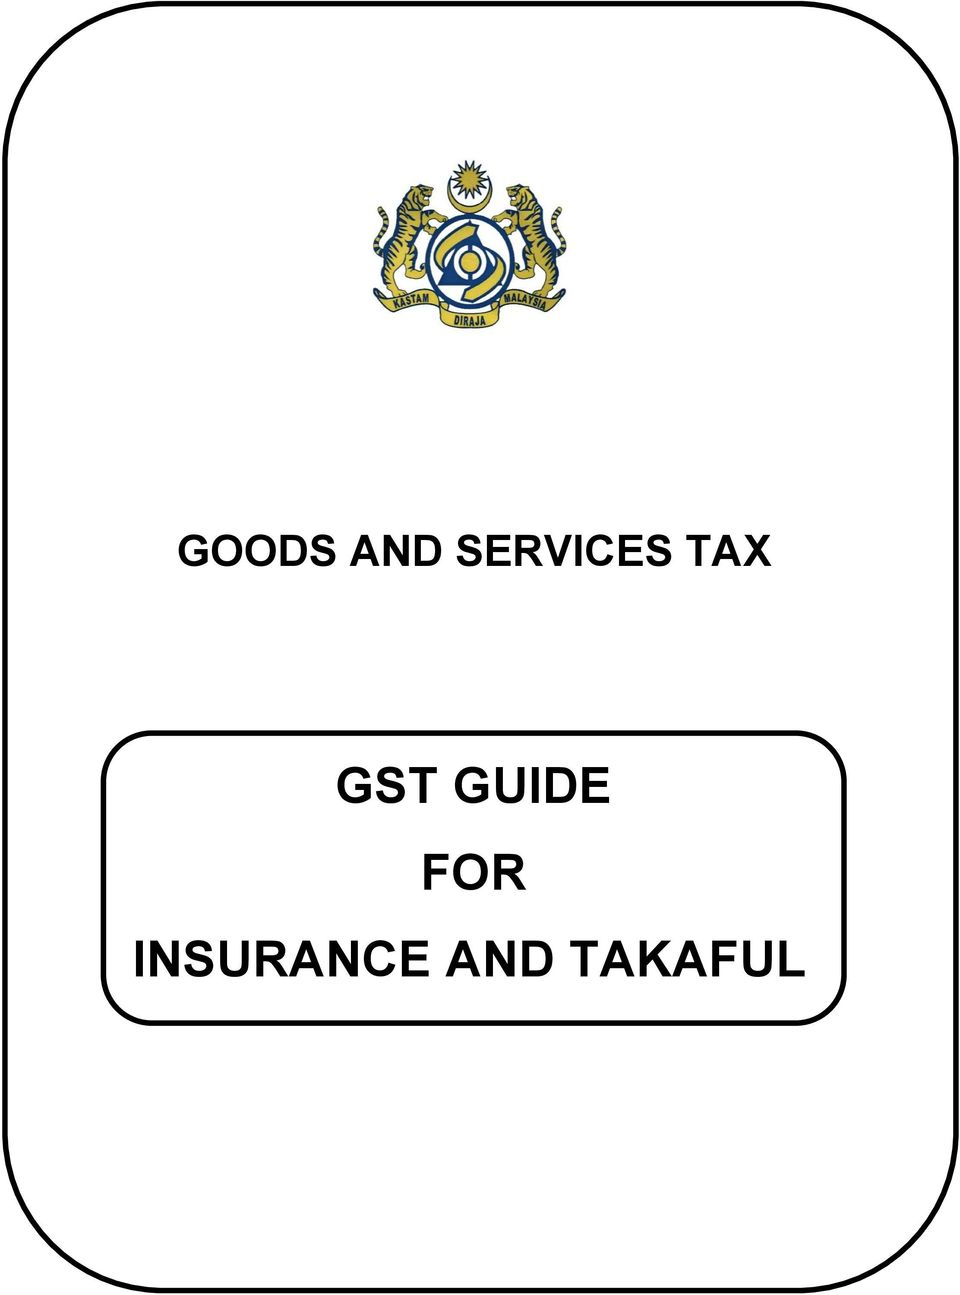 GST GUIDE FOR